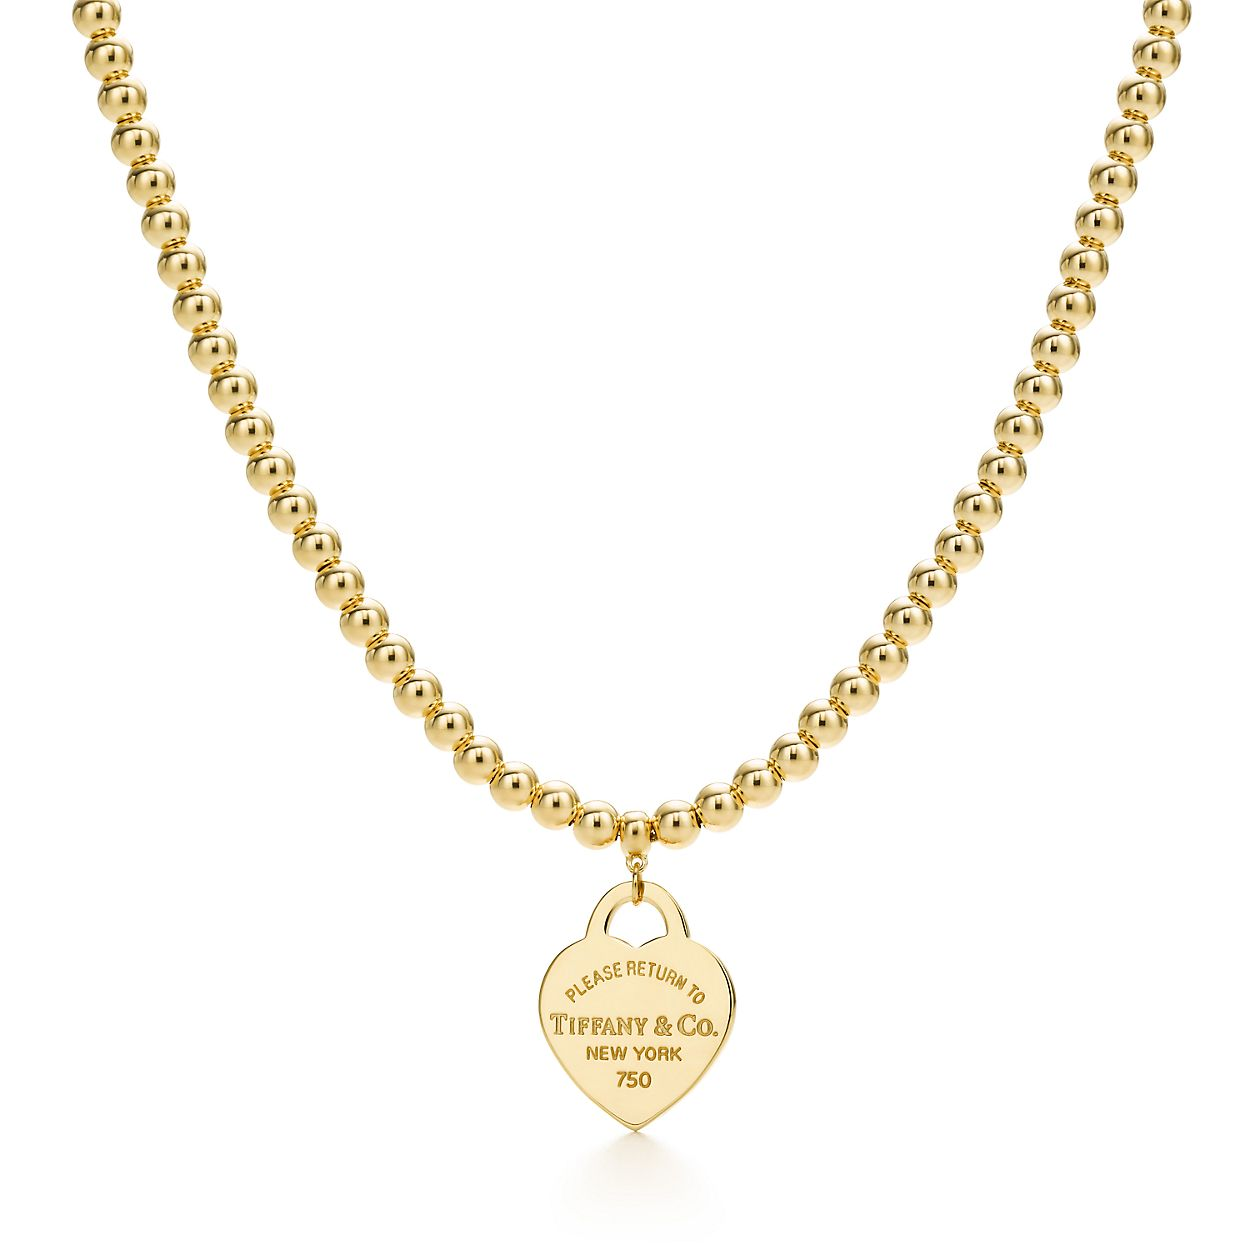 Small beaded chain in 18k gold, 16 long - Size 16 IN Tiffany & Co.